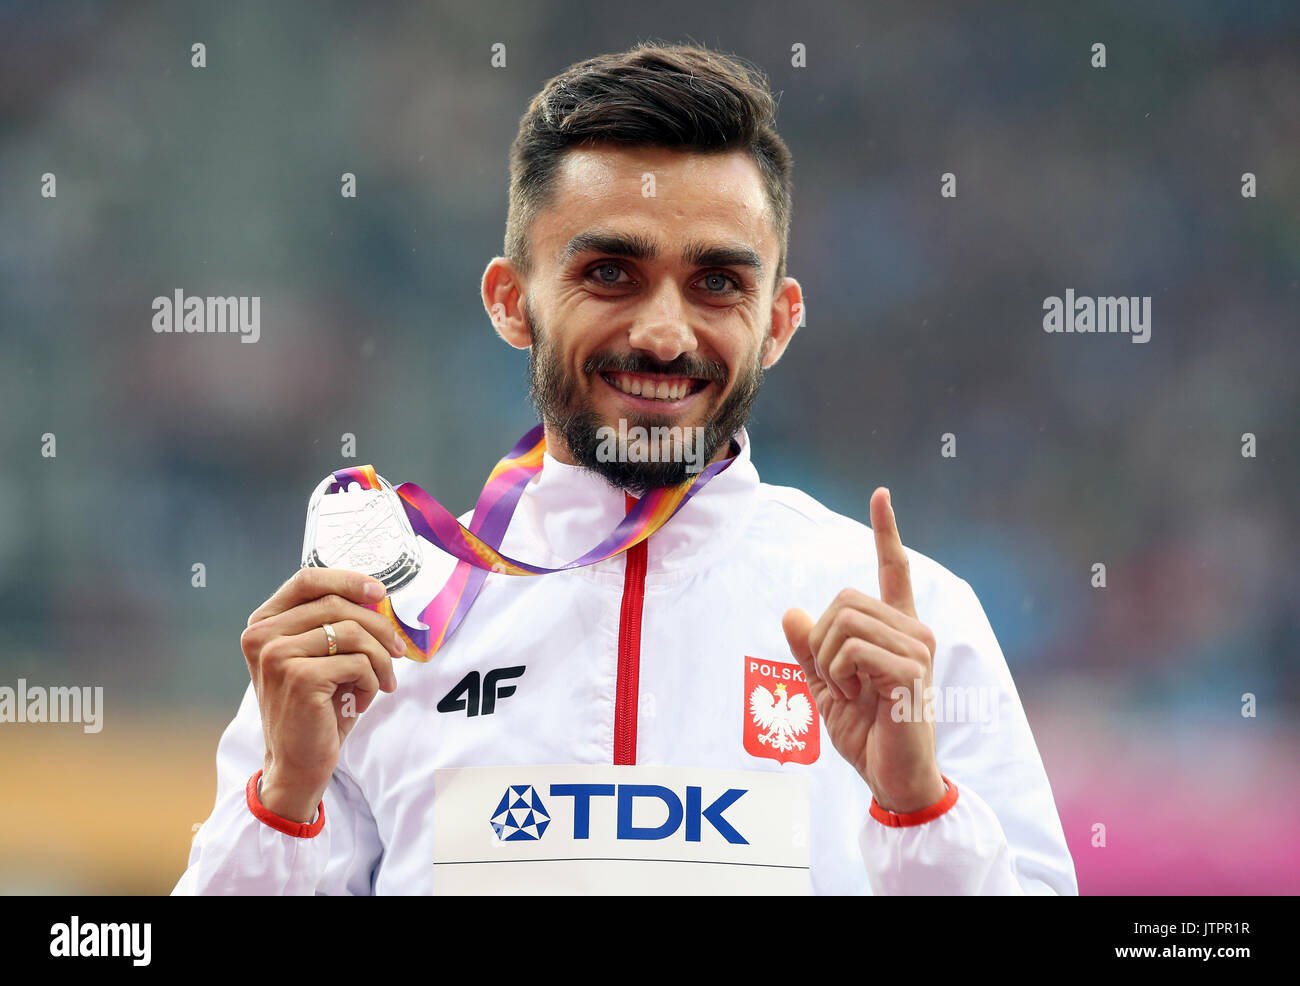 Poland's Adam Kszczot with his Silver medal from the Men's 800m during day six of the 2017 IAAF World Championships at the London Stadium. - Stock Image